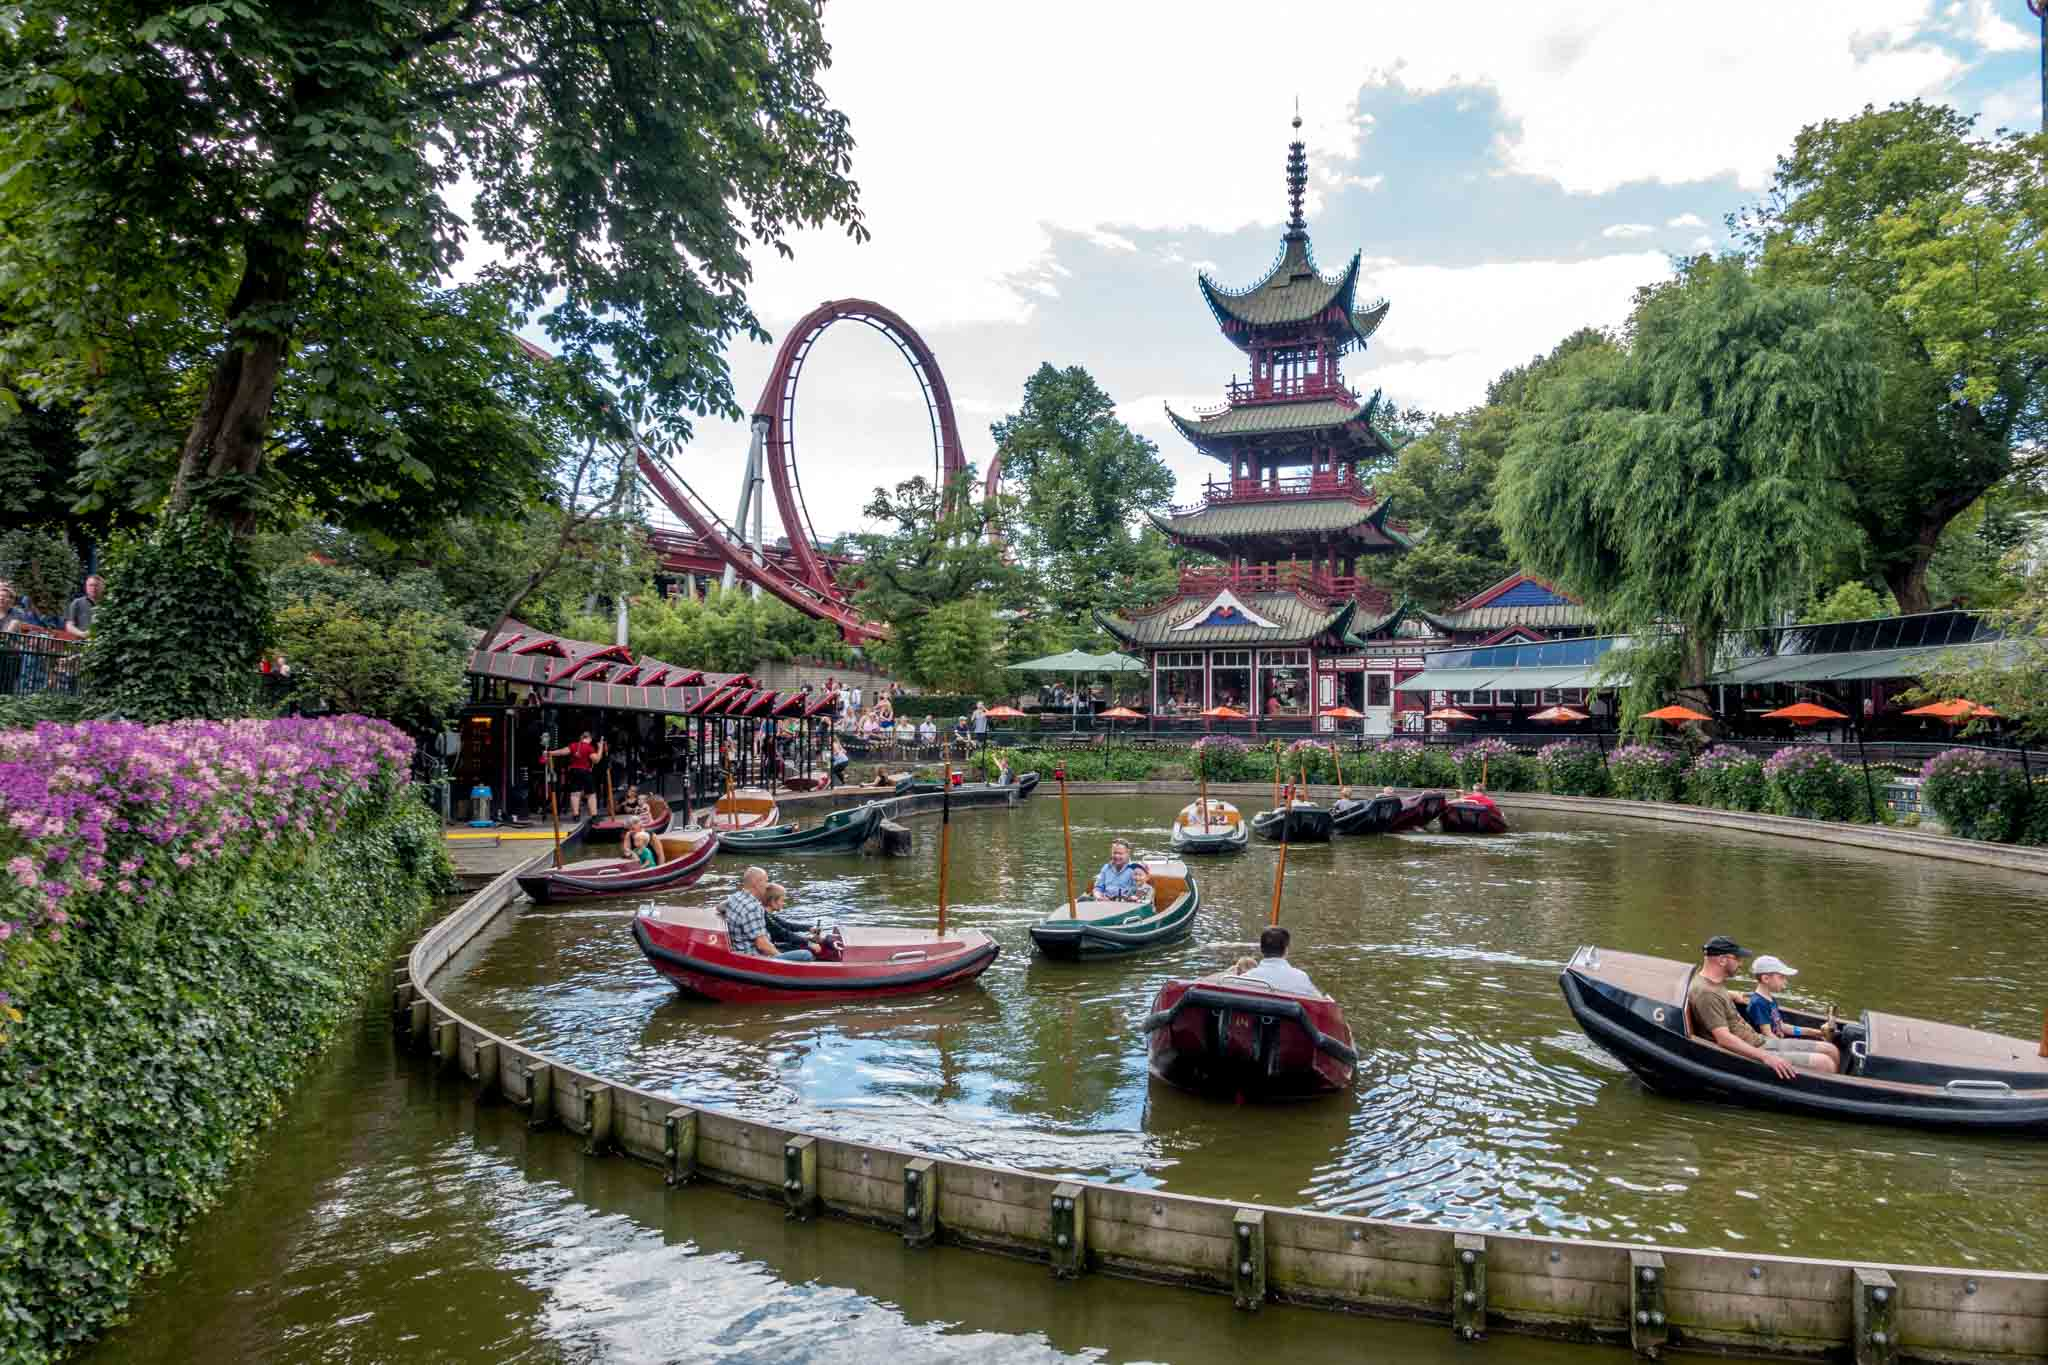 Boat ride at a theme park